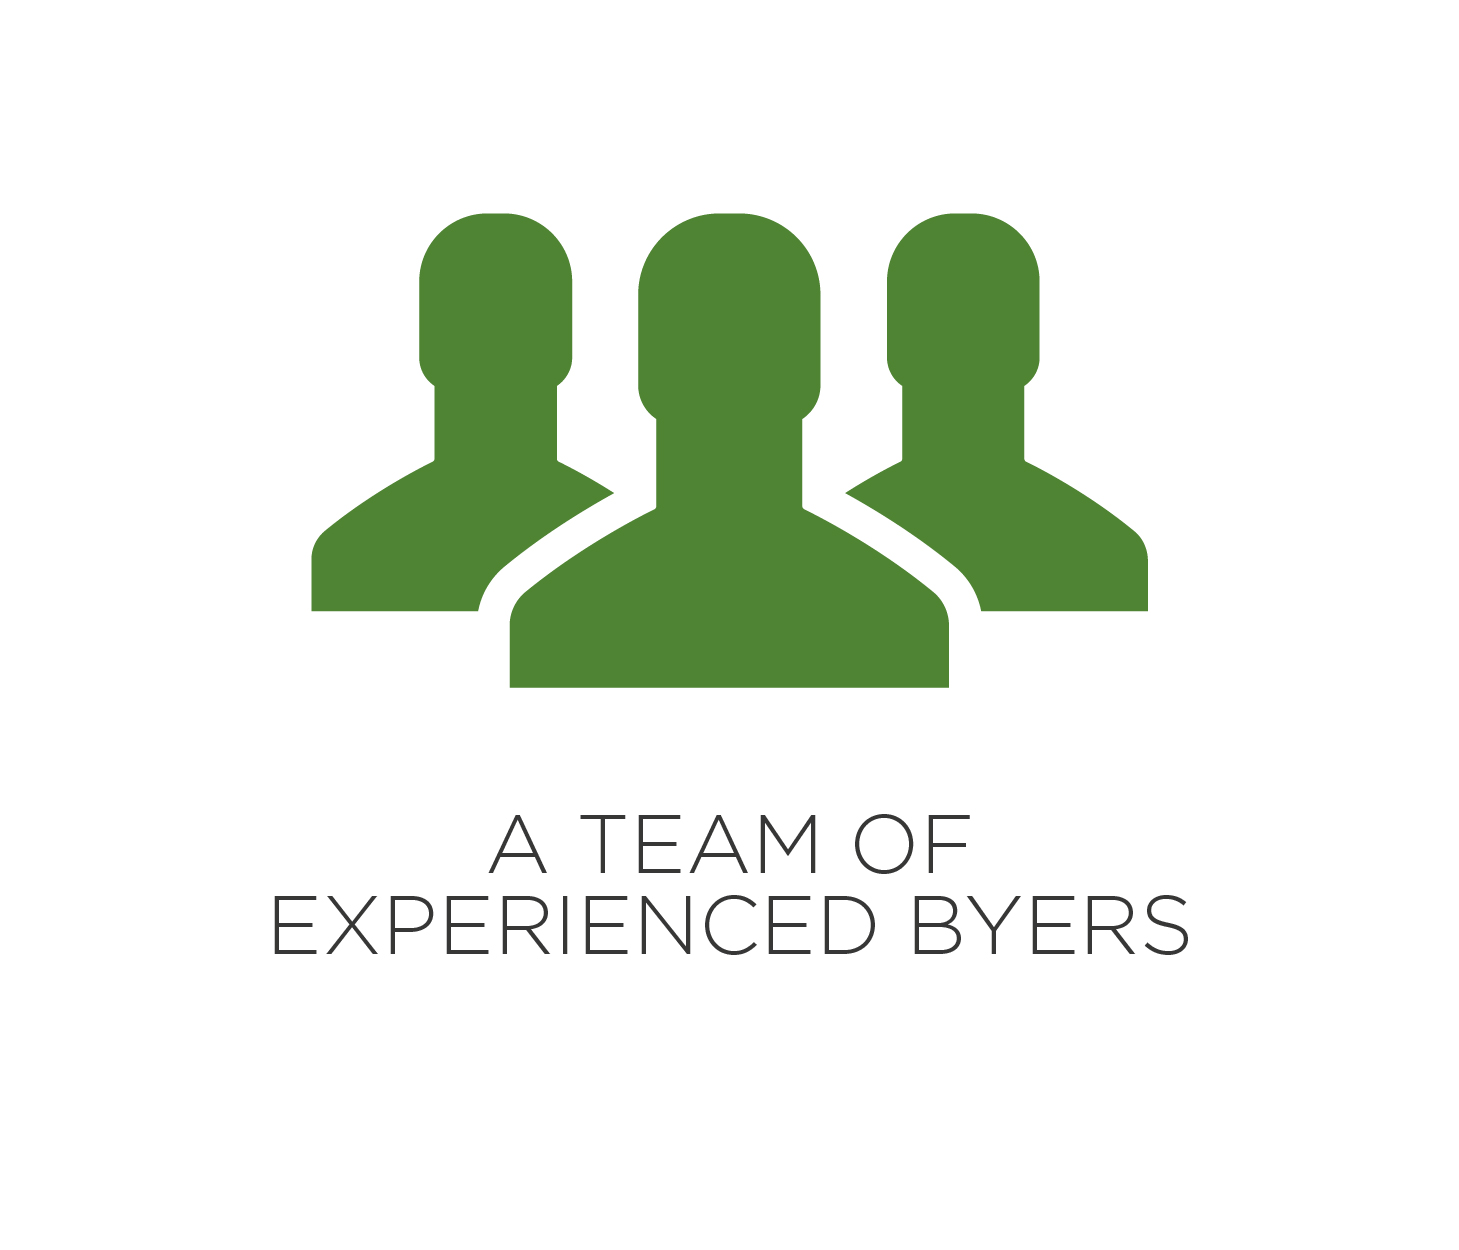 Experienced Byers